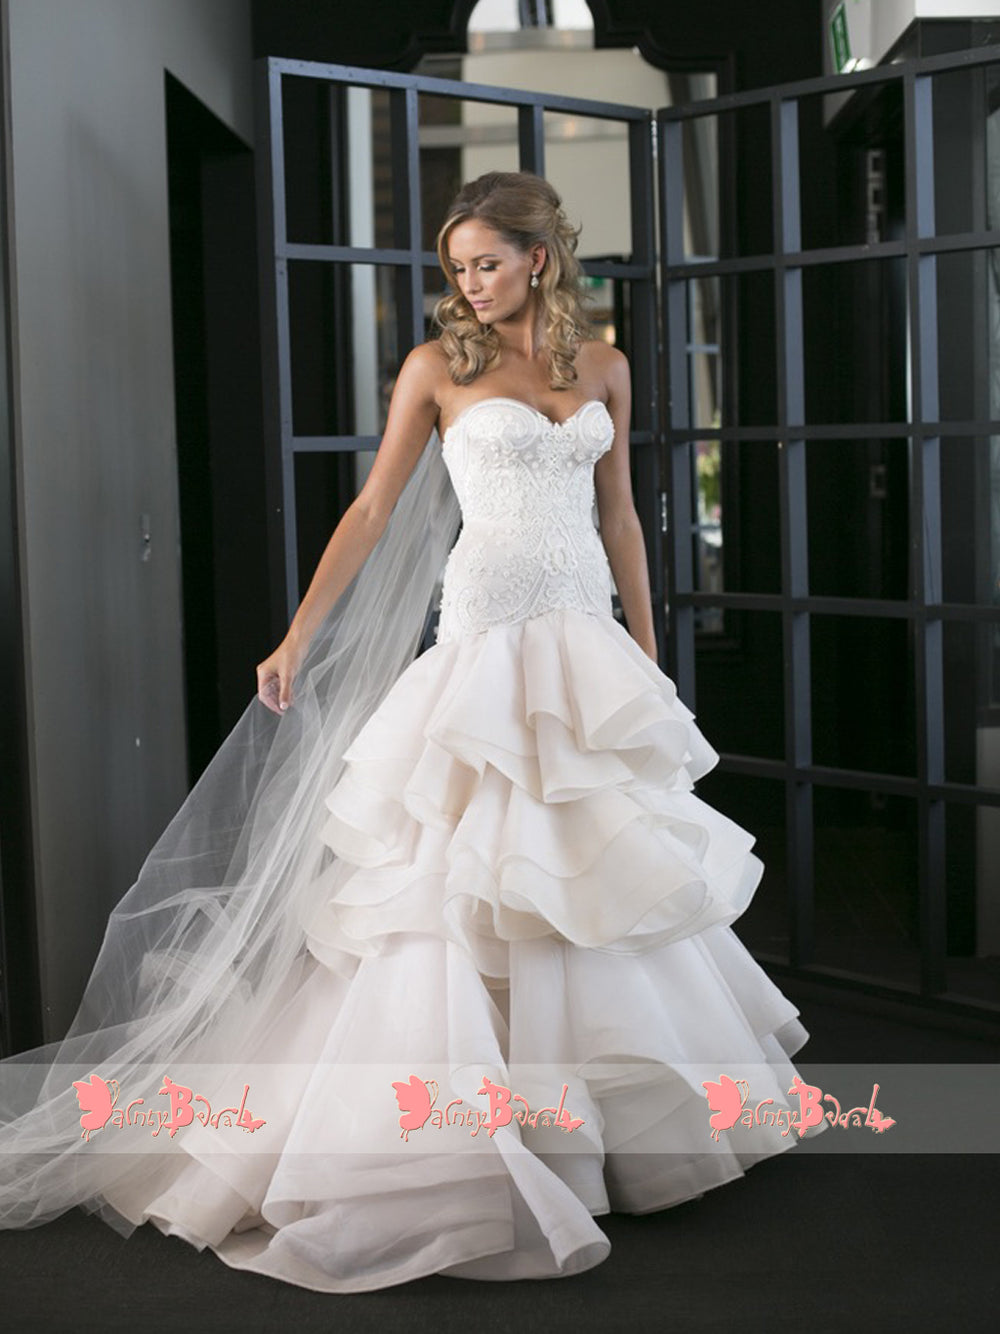 17d7bfac3461 Gorgeous Beads Lace Sweetheart Strapless Ruffles Tiered Organza Wedding  Dresses,DB0141